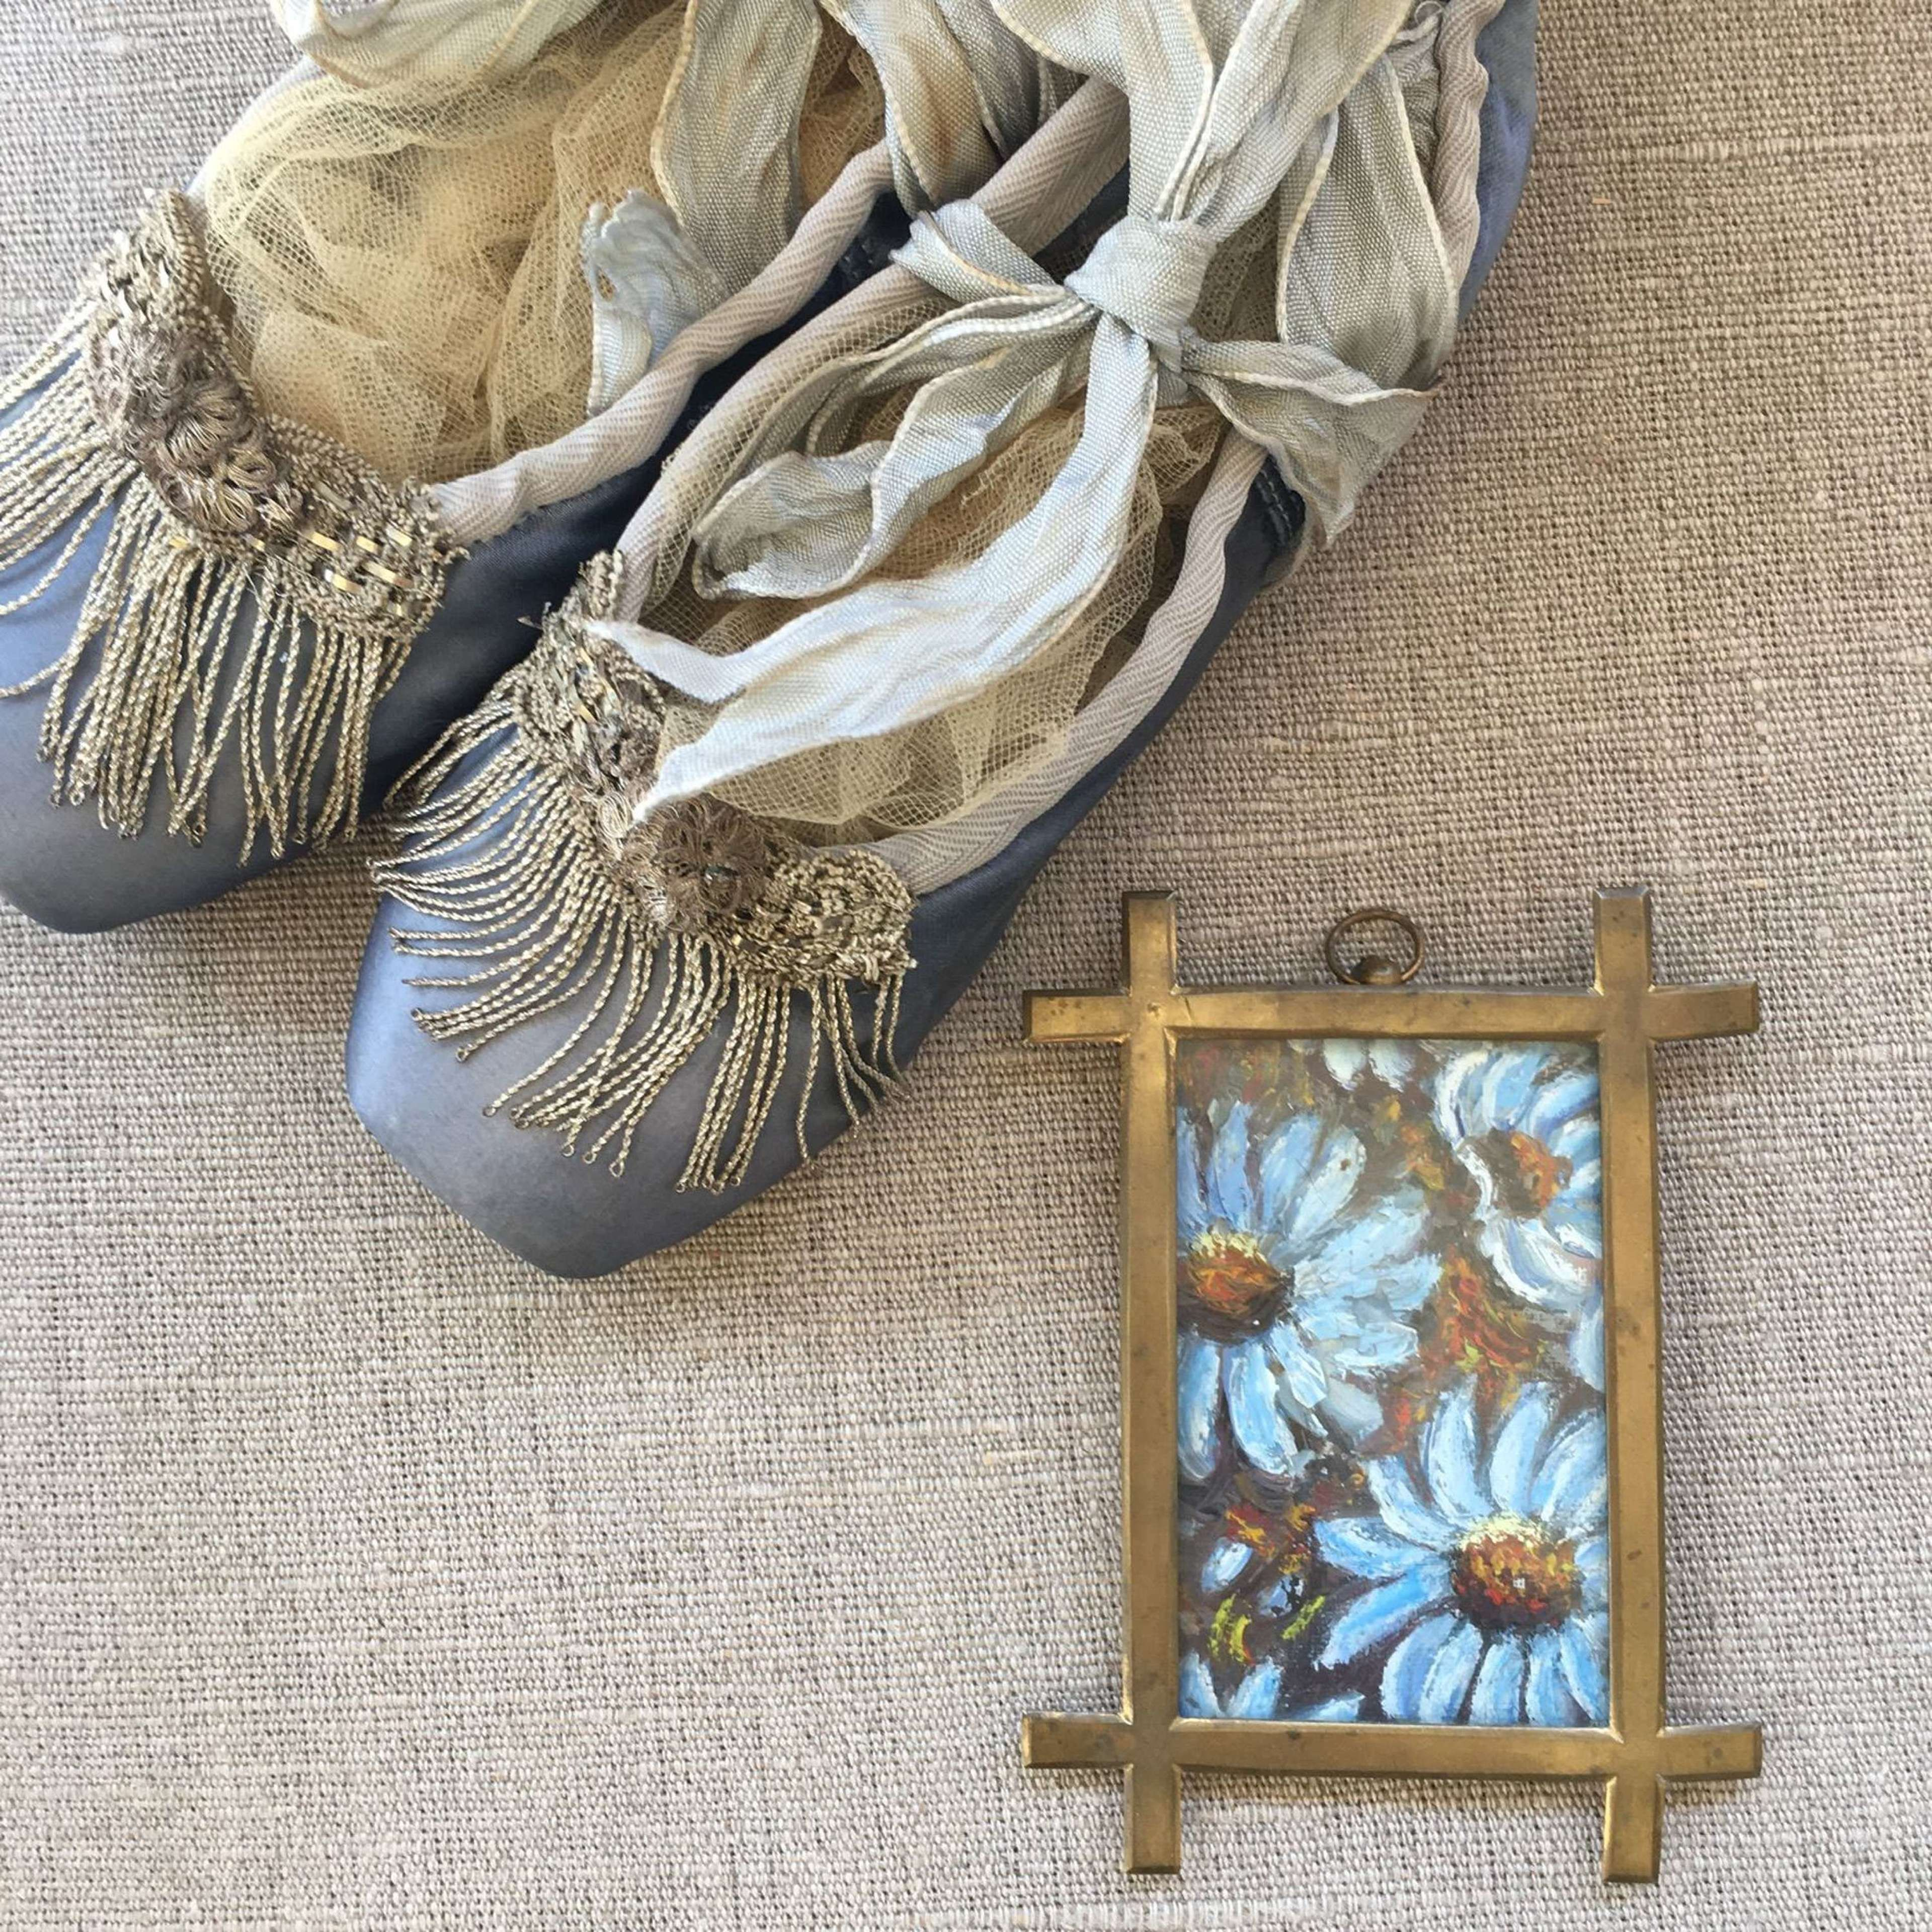 Vintage pointe ballet shoes with antique gold French trims